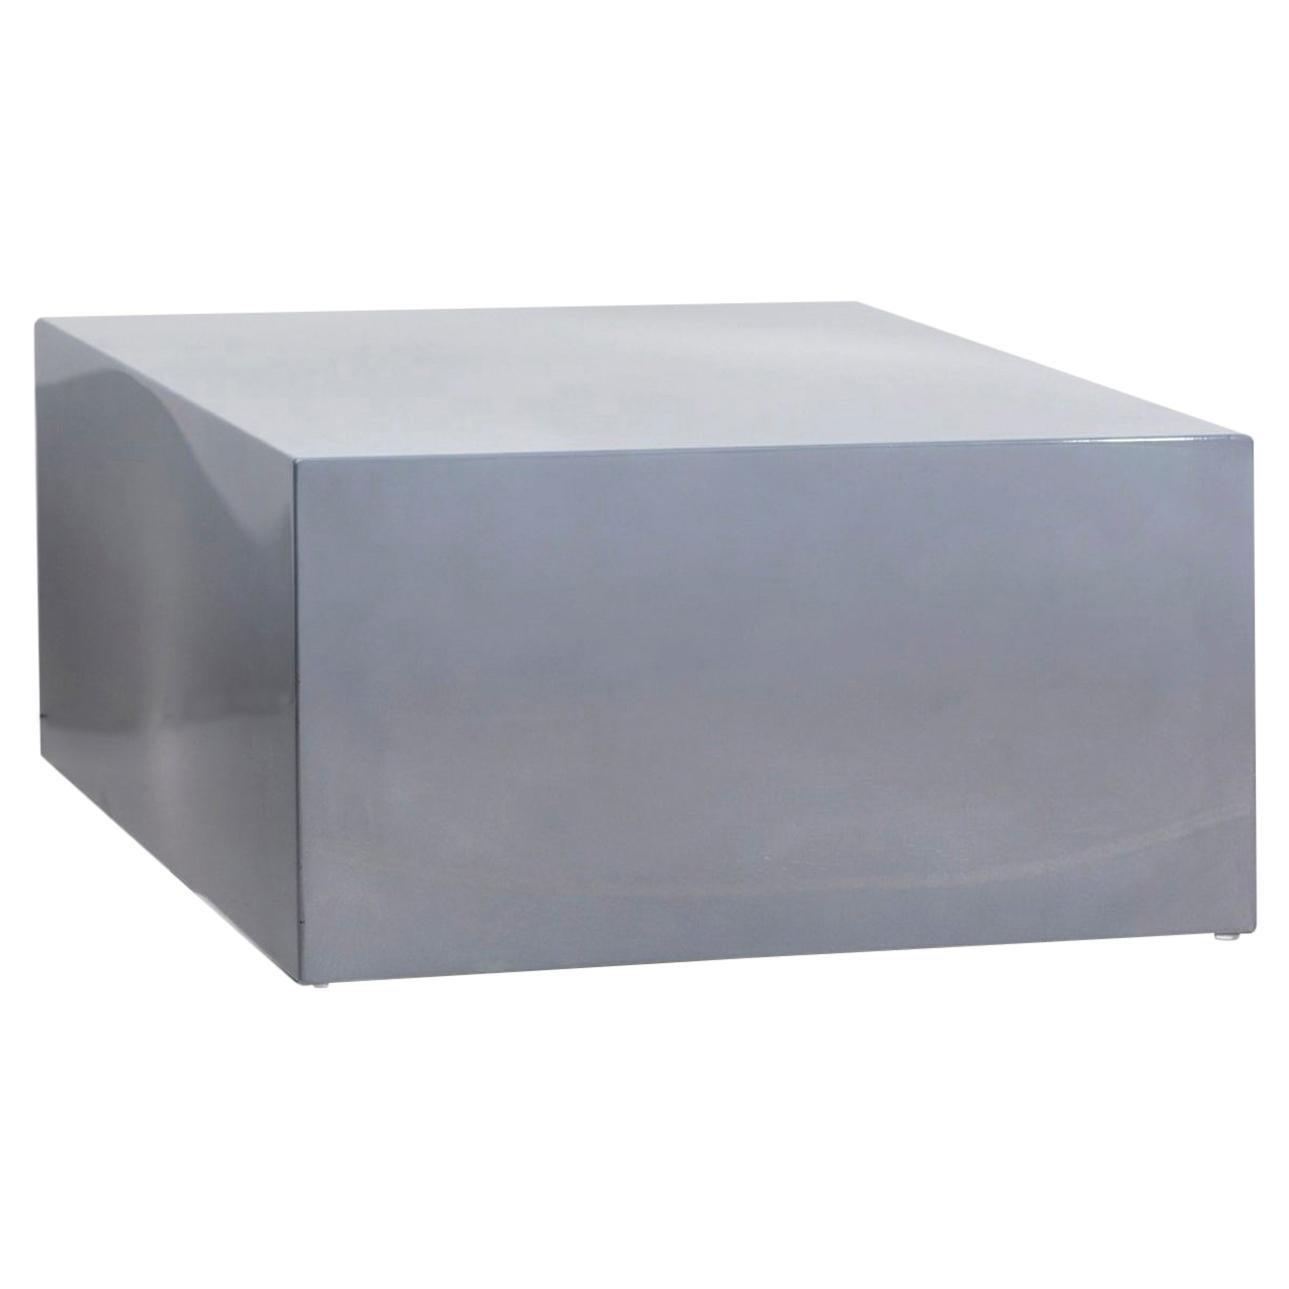 """Sabine Marcelis Side Table Model """"Candy Cube"""", Cast Resin, Silver/Grey, 2020"""